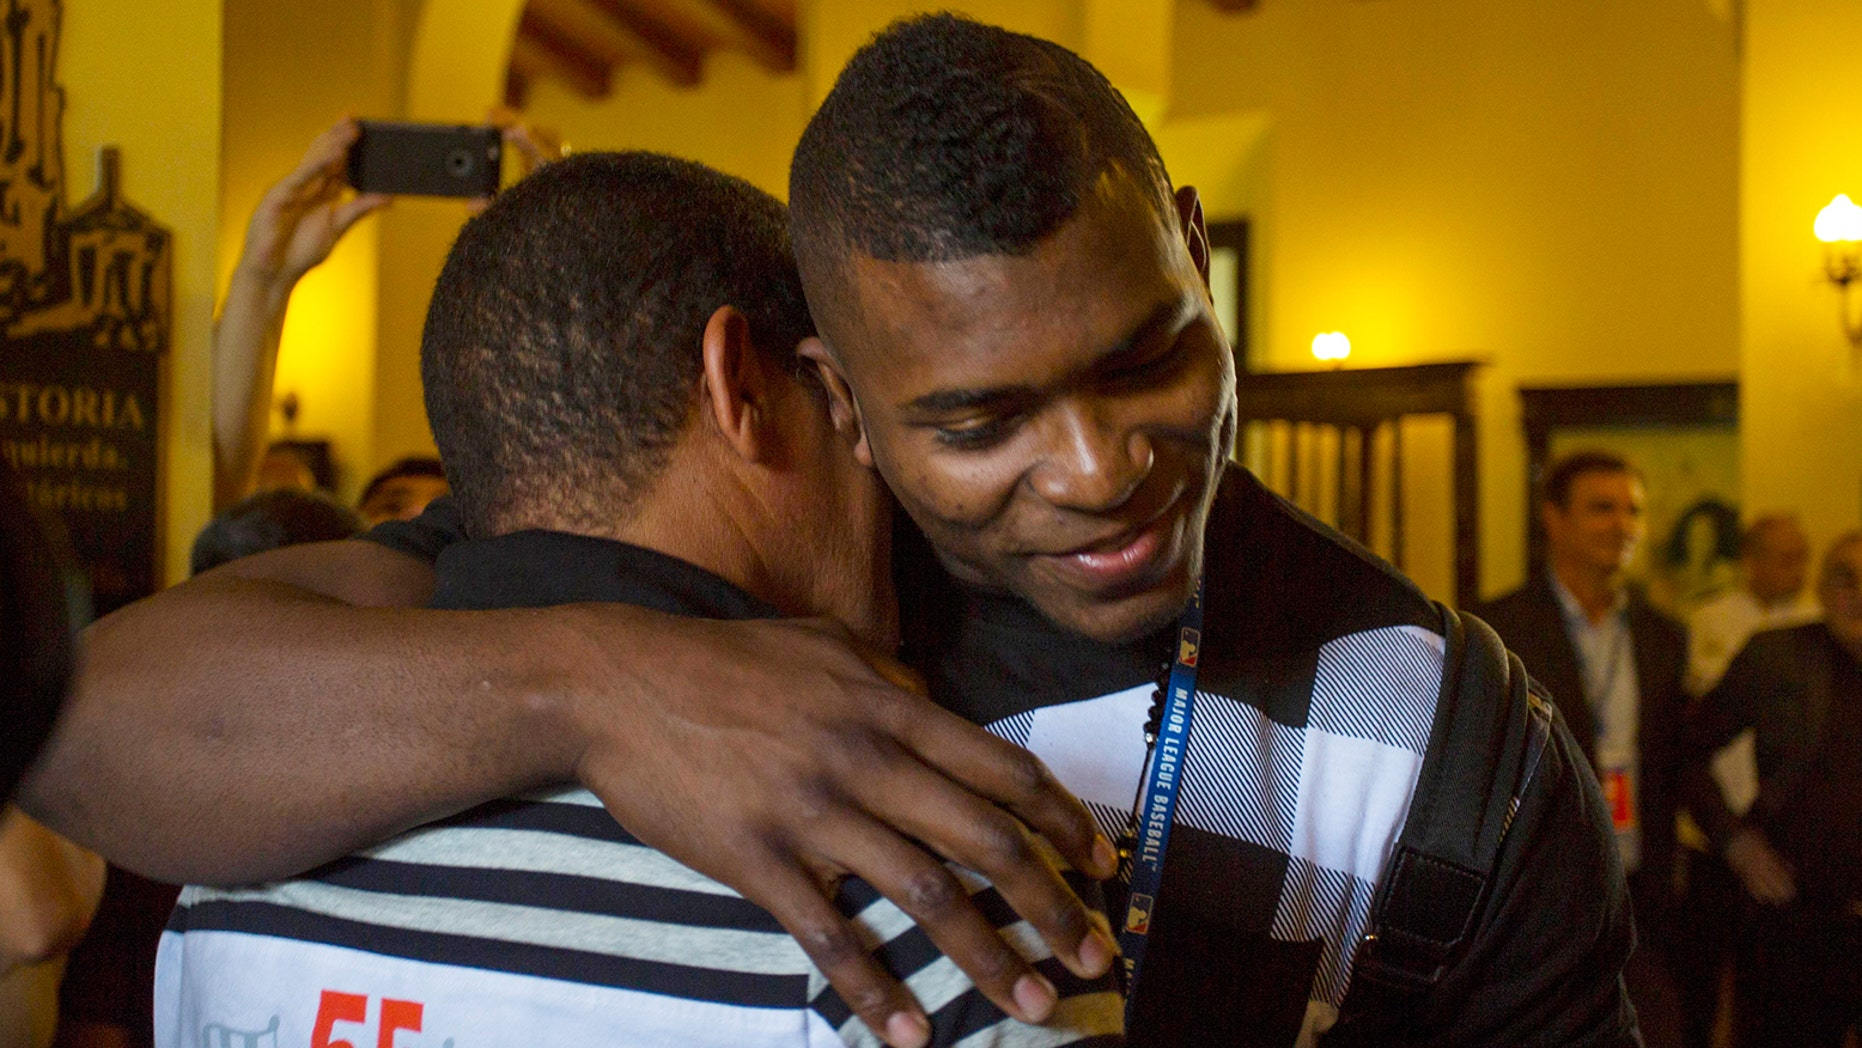 "Los Angeles Dodgers outfielder Yasiel Puig, right, hugs his former coach Juan Arechavaleta as he arrives to Hotel Nacional in Havana, Cuba, Tuesday, Dec. 15, 2015. A lineup of Cuban baseball superstars including some of the most famous defectors in recent memory made a triumphant return Tuesday as part of the first Major League Baseball trip to the island since 1999. ""I'm very happy to be here,"" said Puig, who had been barred from returning to Cuba until he was granted special permission for this week's trip. (AP Photo/Desmond Boylan)"